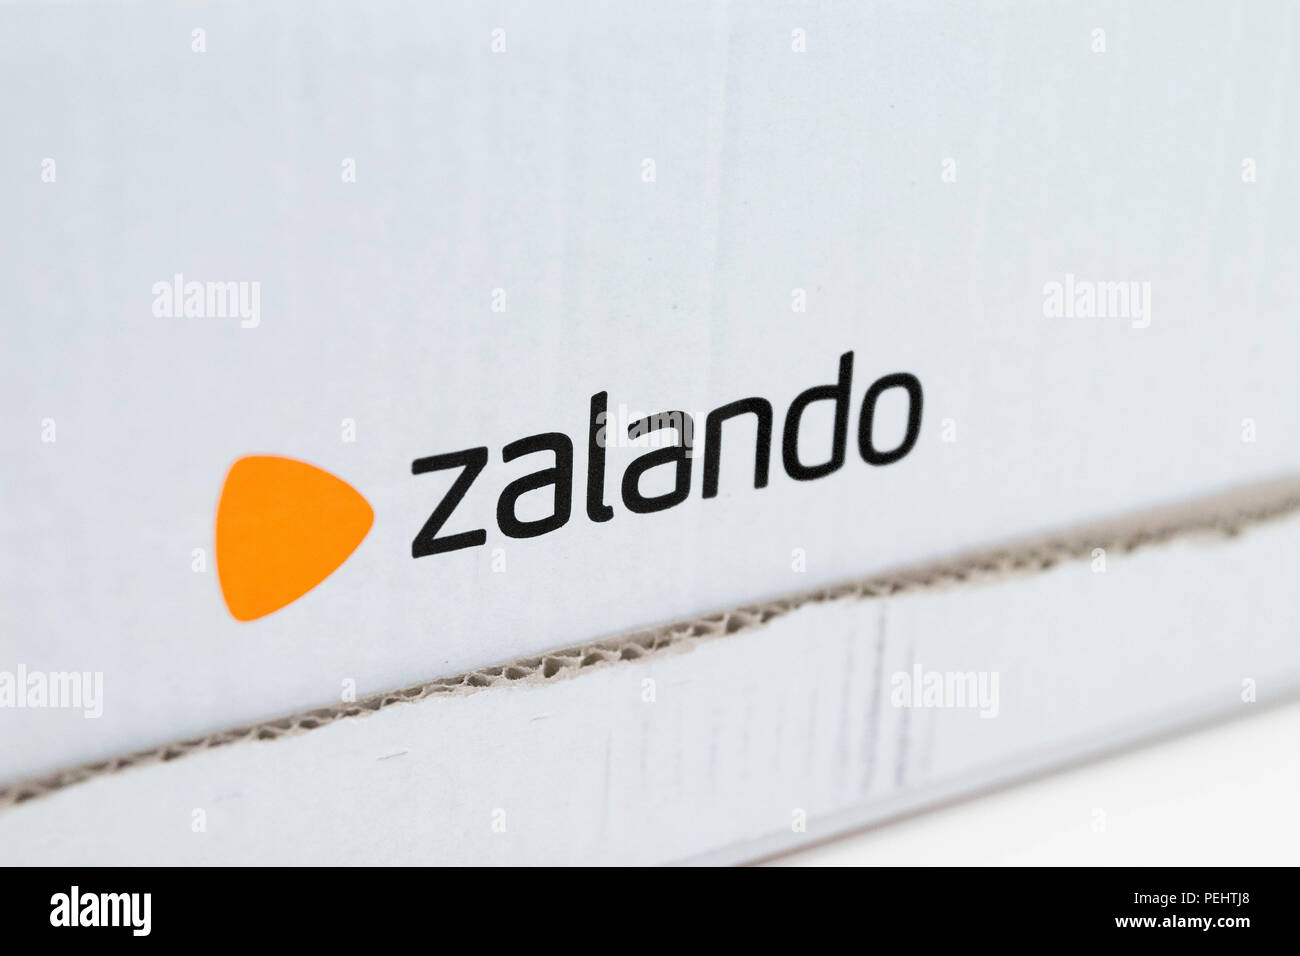 Zalando Online Bestellen Zalando Stock Photos Zalando Stock Images Alamy